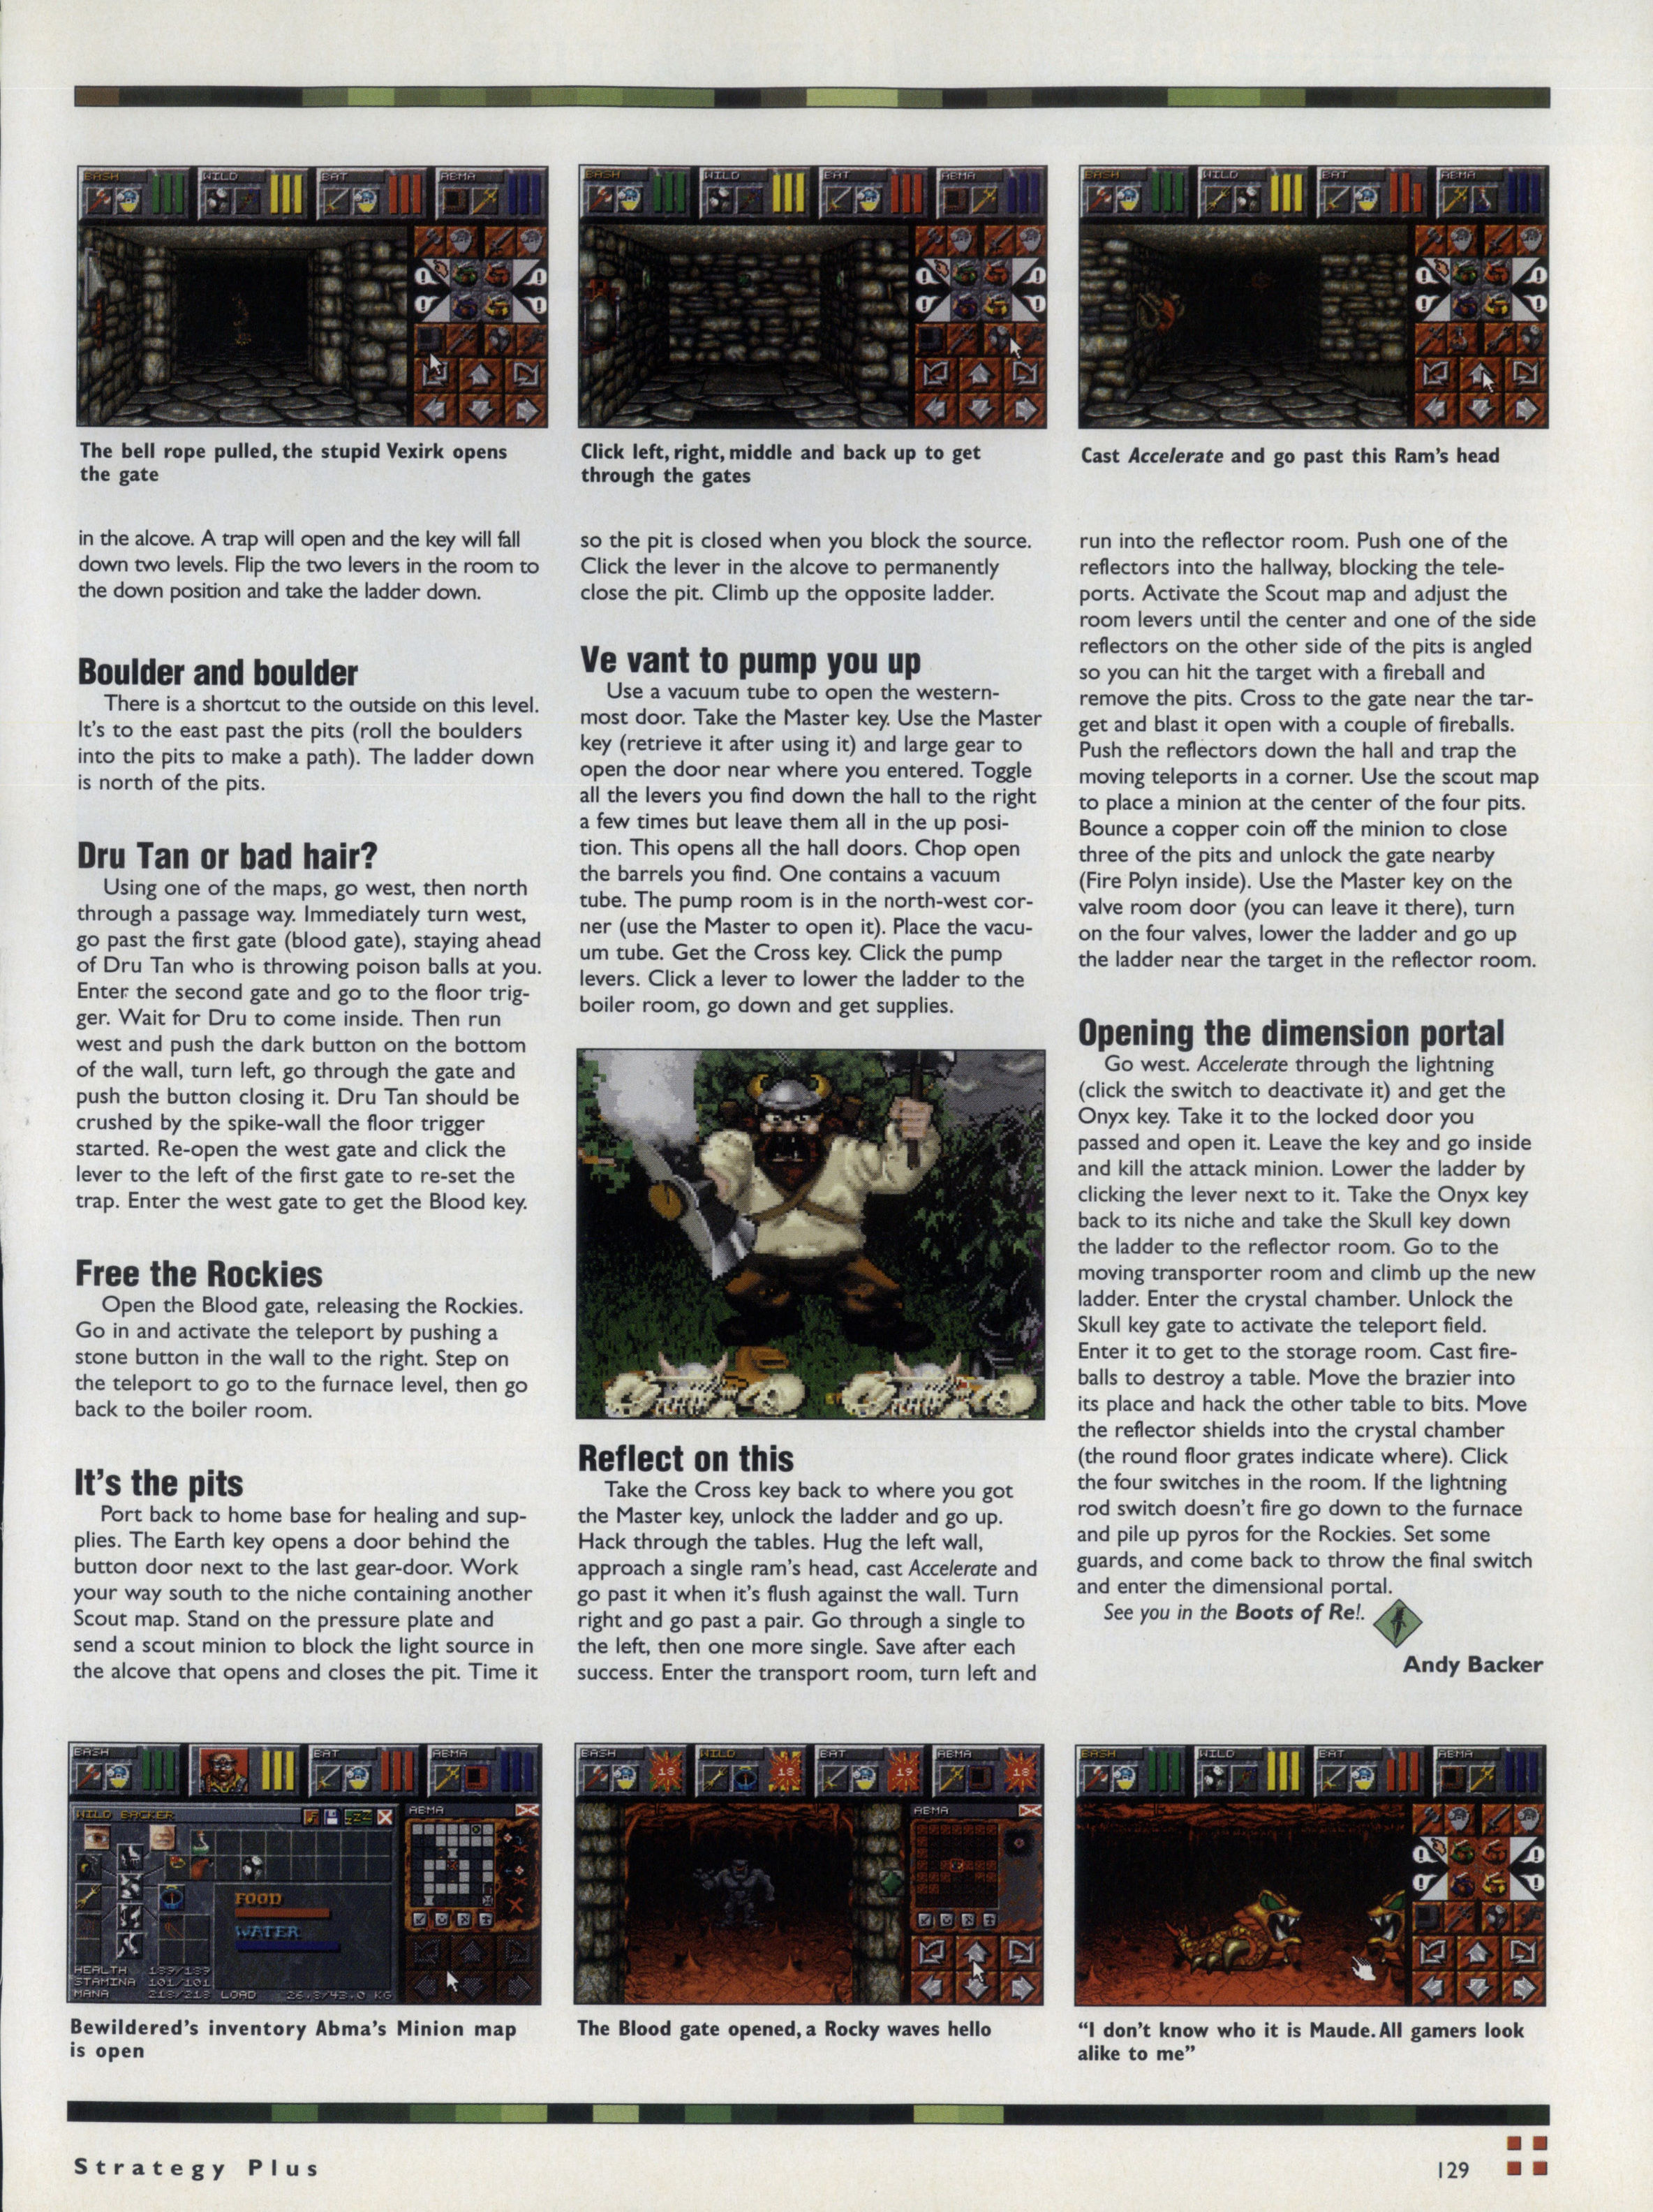 Dungeon Master II Hints published in British-American-Canadian magazine 'Computer Games Strategy Plus', Issue #61 December 1995, Page 129